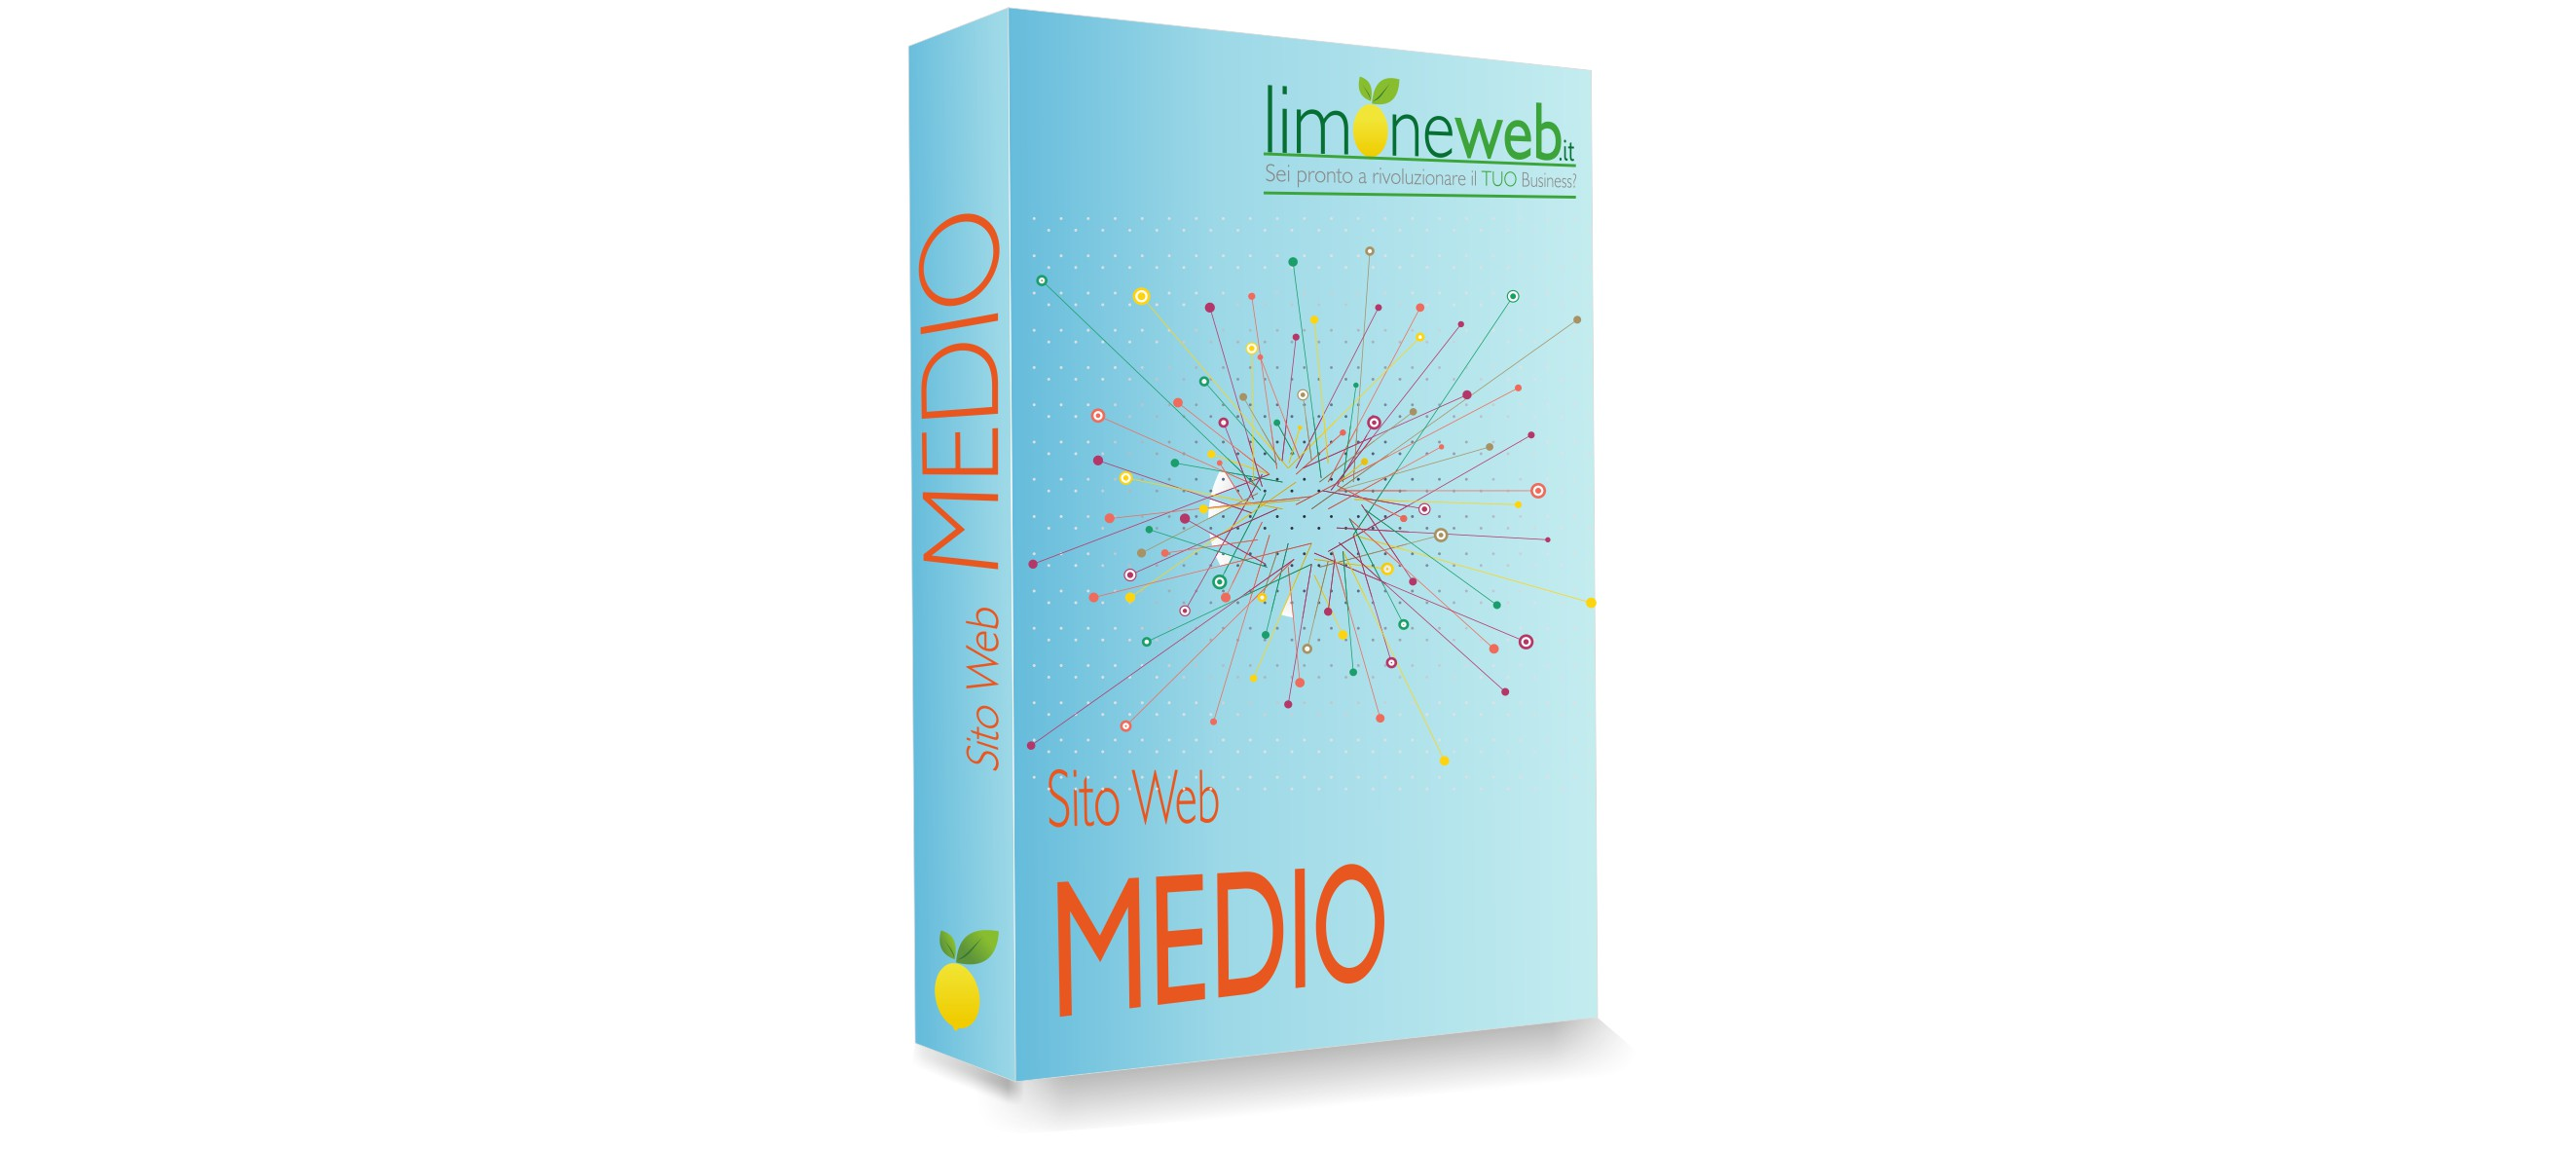 LimoneWeb.it - Sito Web Medio